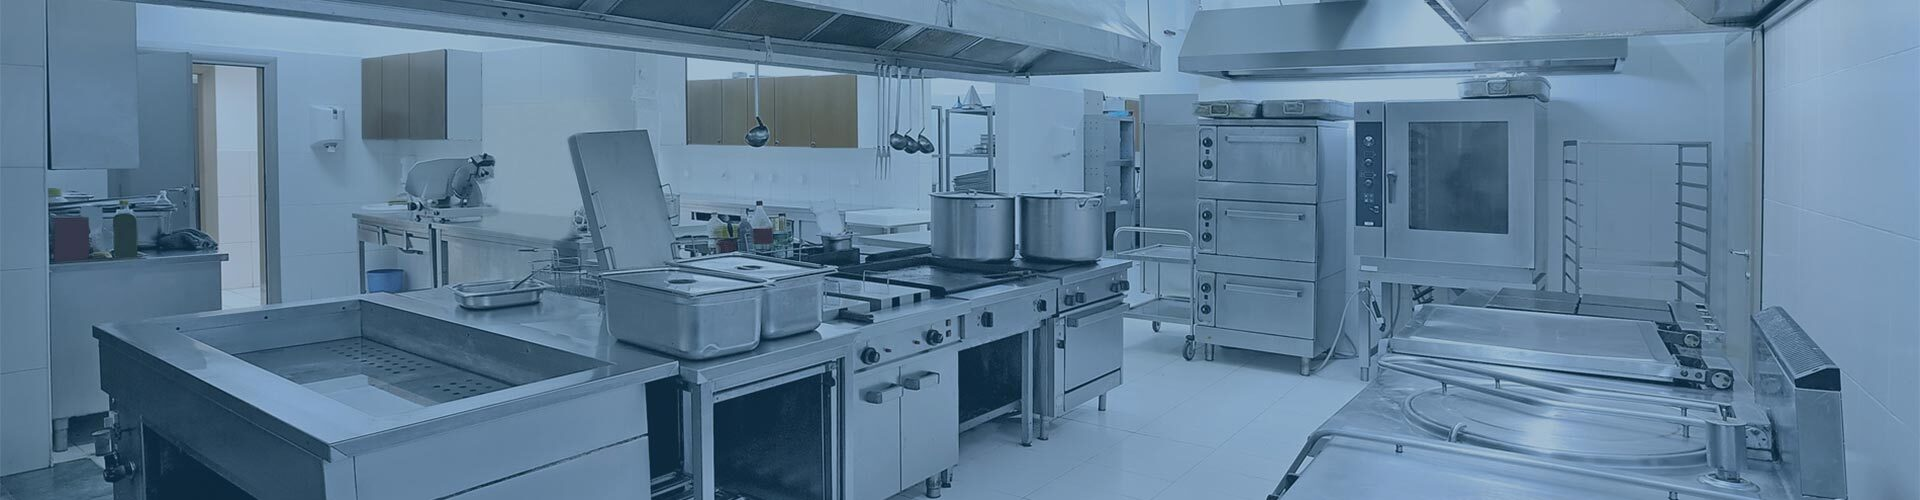 commercial-kitchen-cleaning-winnipeg